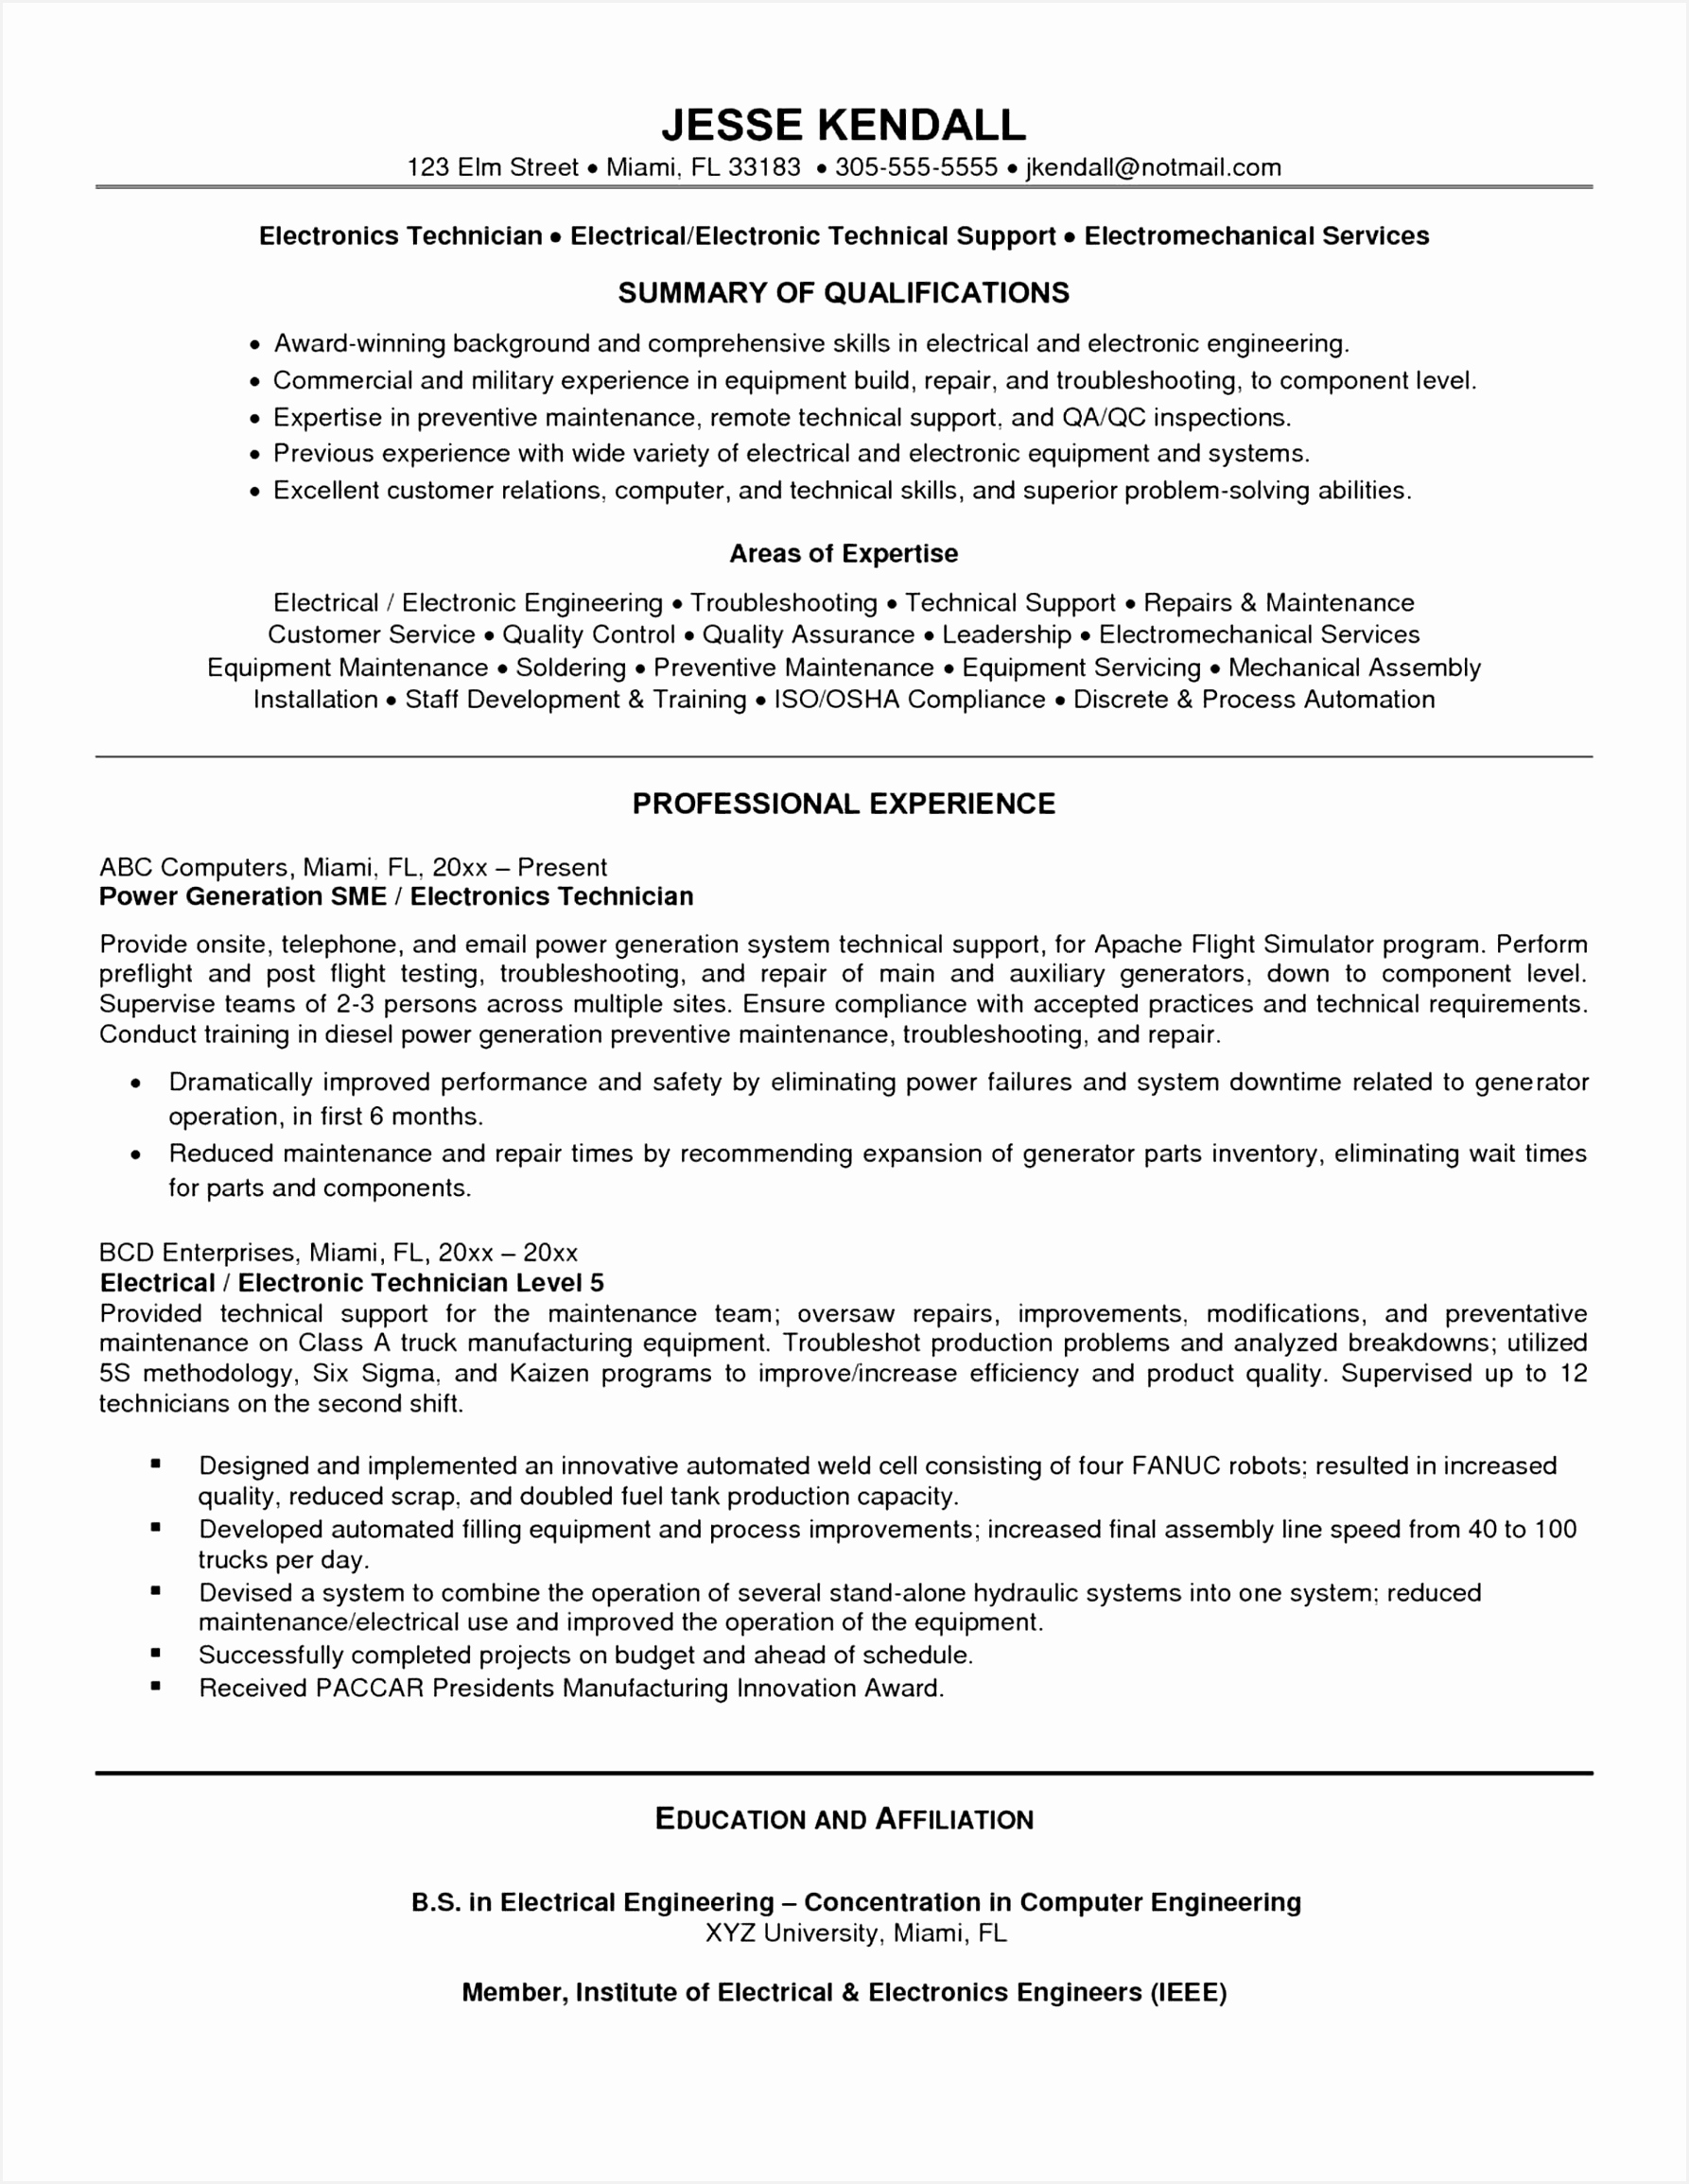 Best Problem solving Skills Resume Unique Pharmacy Tech Resume Template Fresh Obama Resume 0d Format 23101786qsa5z